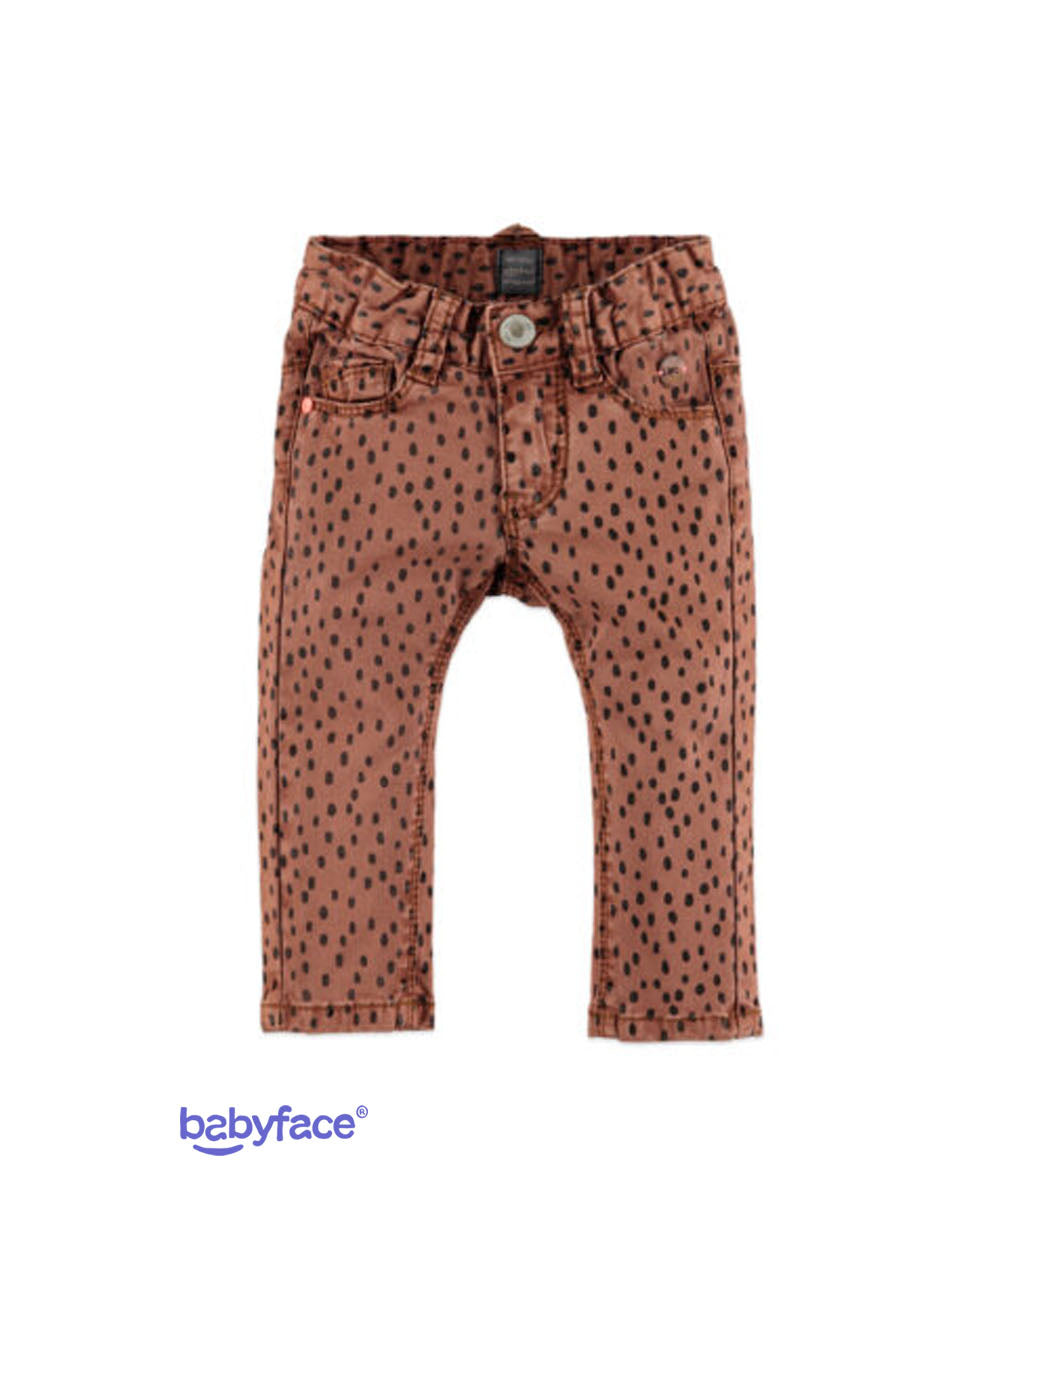 Pants for baby 20308252 caramel